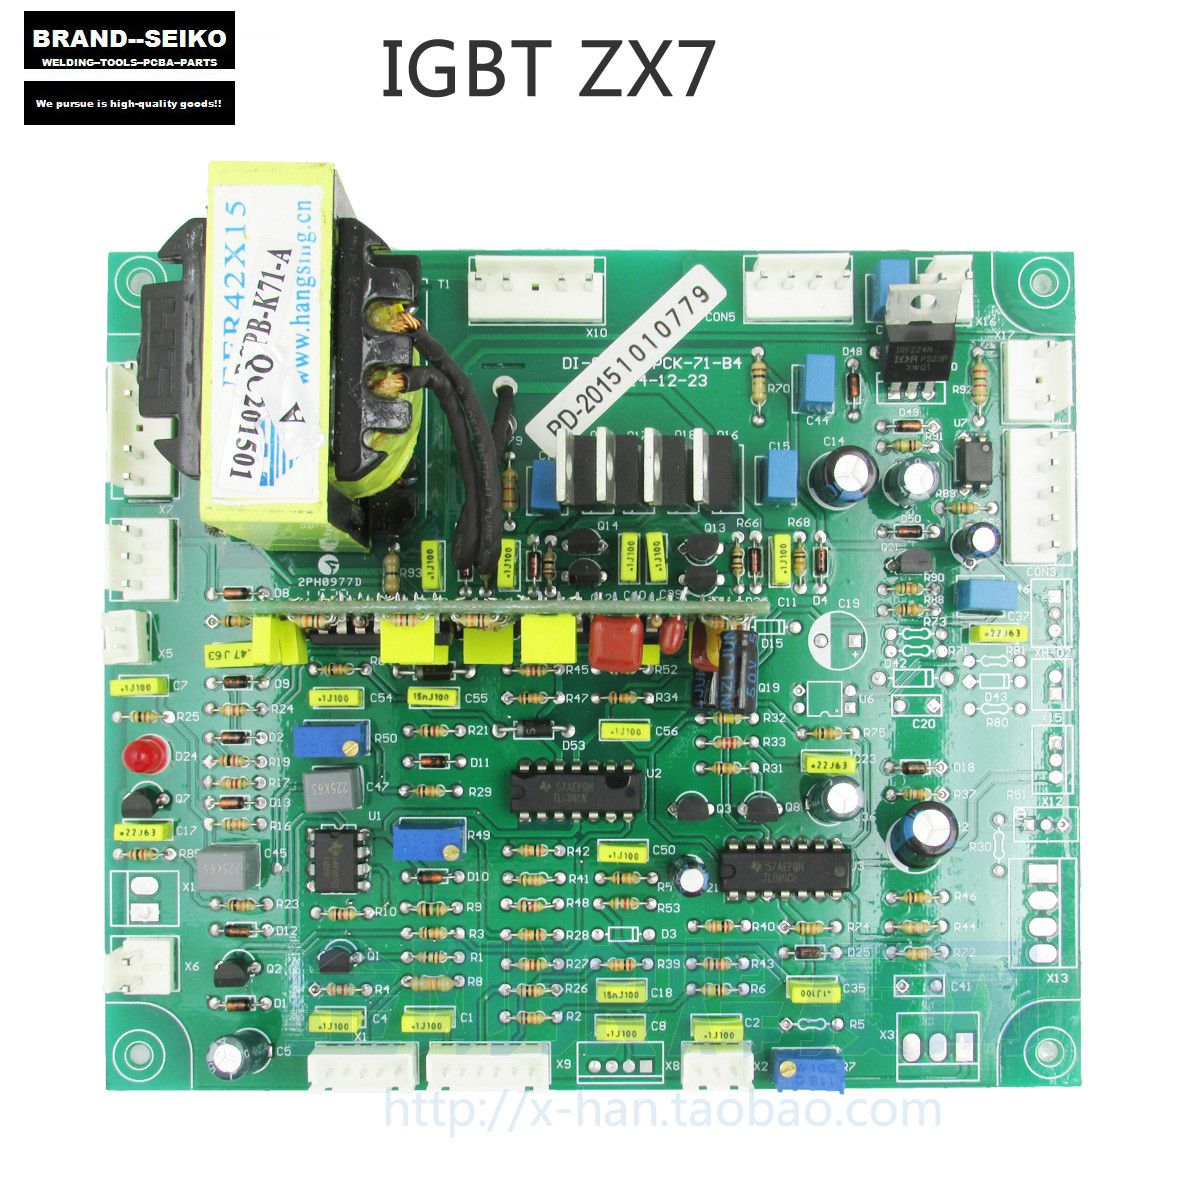 Igbt Inverter Dc Manual Welding Machine Zx7 Motherboard Repair Pcb Universal Remote Control Circuit Board From Experienced Boards